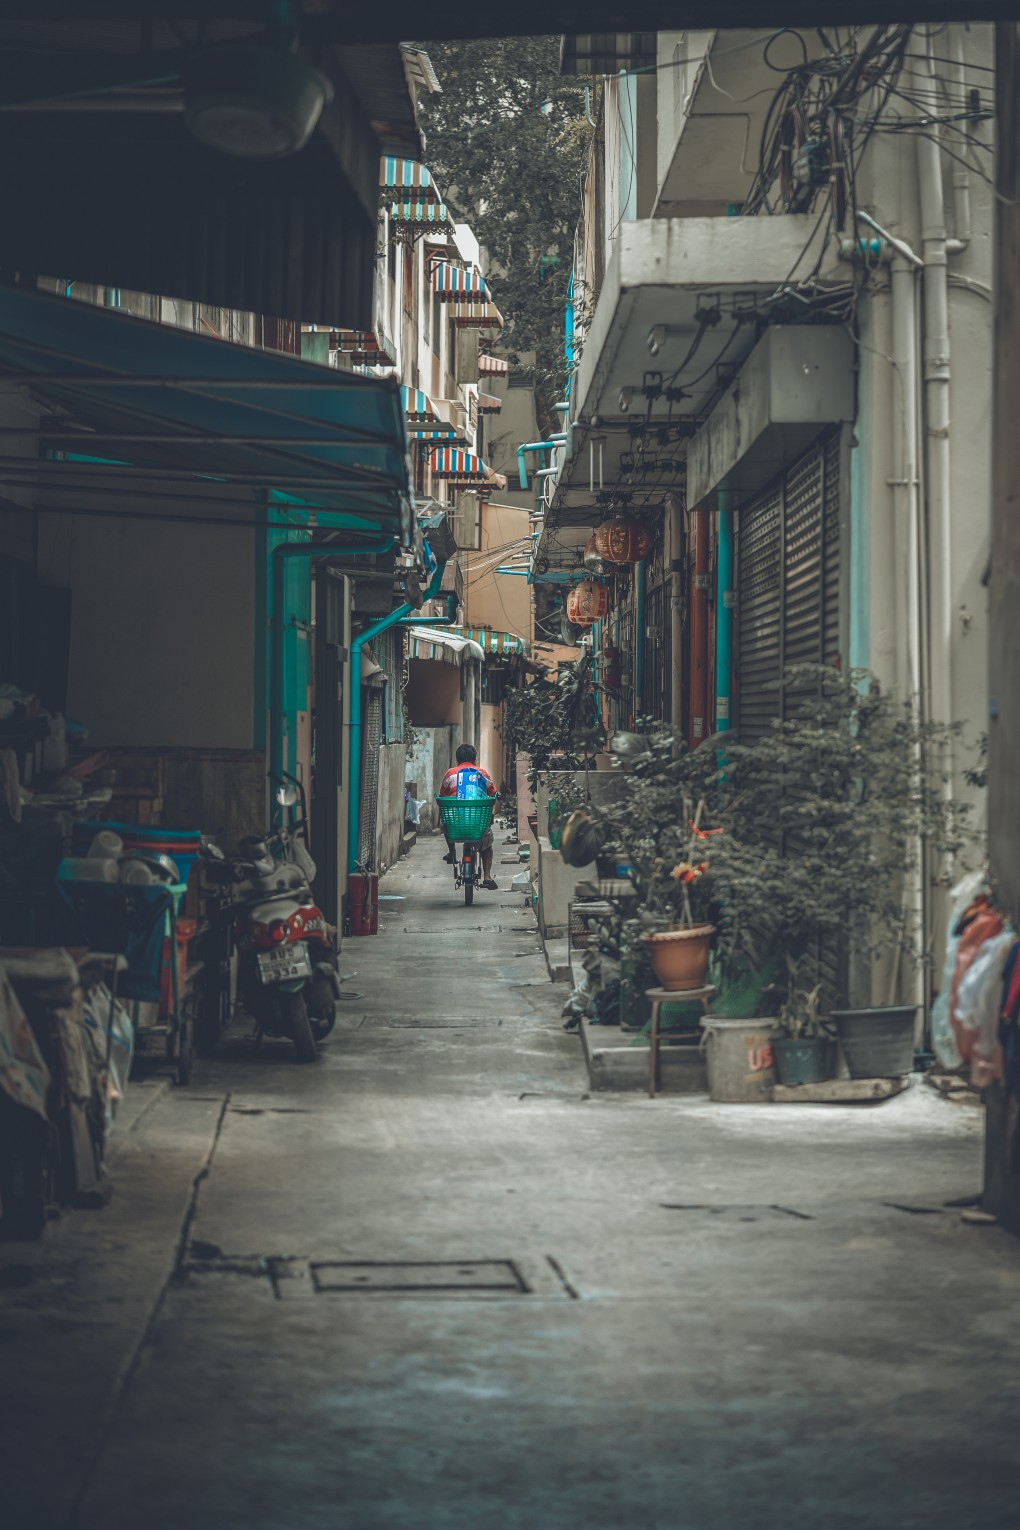 Quiet on the street in the China Town neighborhood of Bangkok